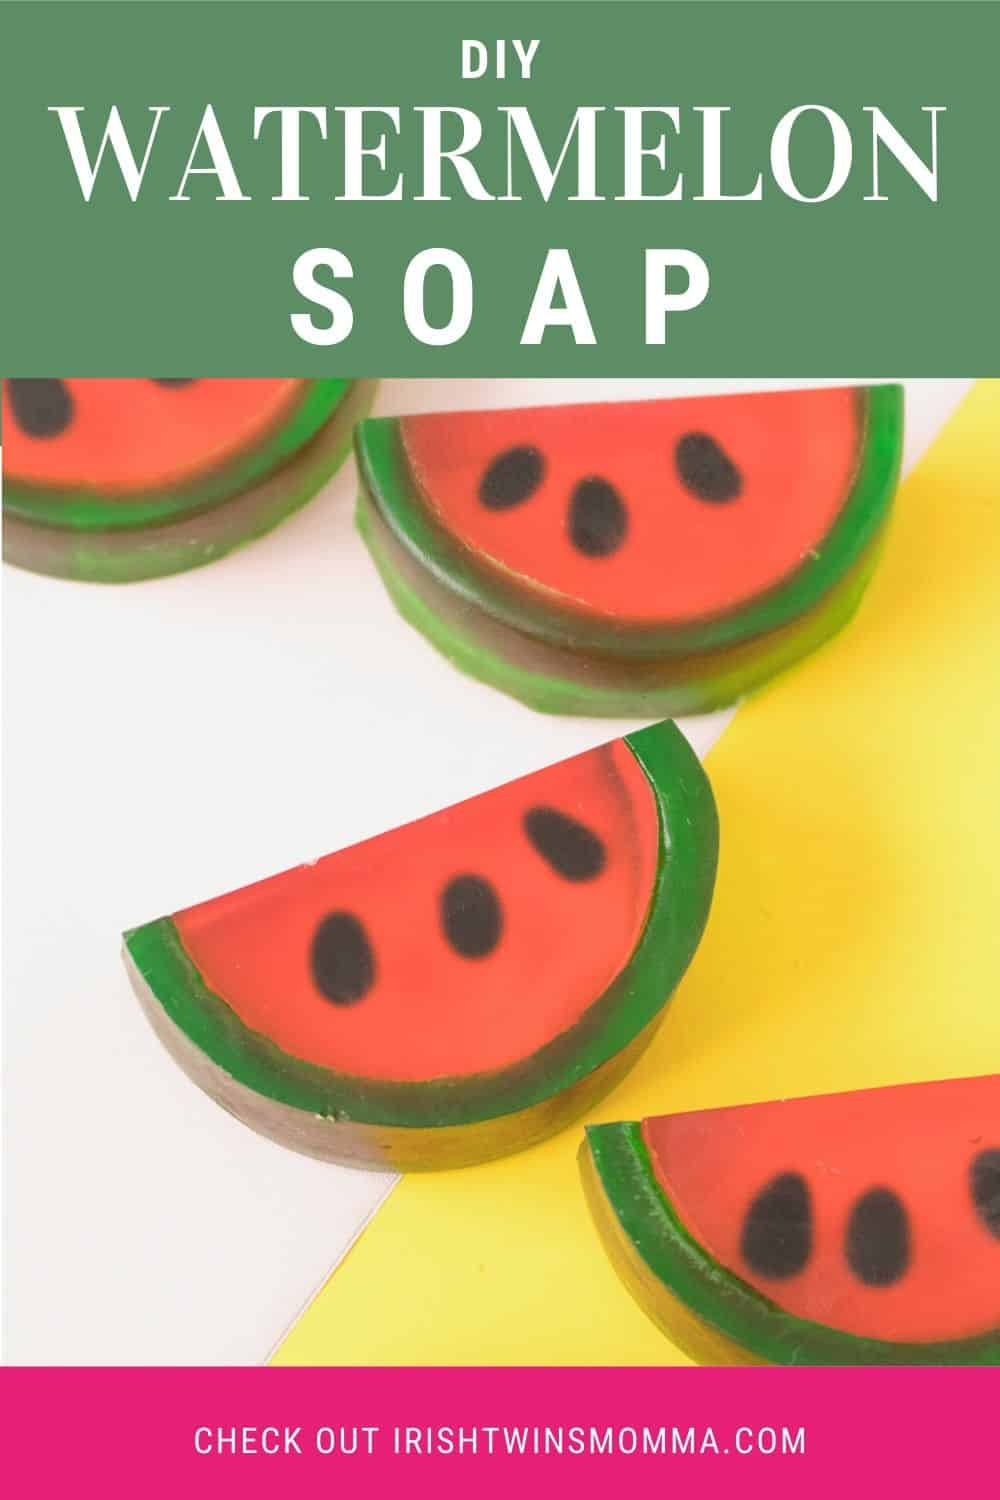 It'll be easy to peel them off of their phones for these DIY watermelon soaps, brought to you by Club Crafted. They bring a touch of science to your summer crafts AND they smell great! Your teenager will need melt-and-pour glycerine soap, green and pink soap coloring, essential oils, black fondant, a spray bottle of alcohol or hairspray, a sharp knife, a round cookie cutter, a silicone soap mold, and a large glass measuring cup. The finished product will look cute in your bathroom and can be given as gifts to your teen's friends. via @irishtwinsmom11